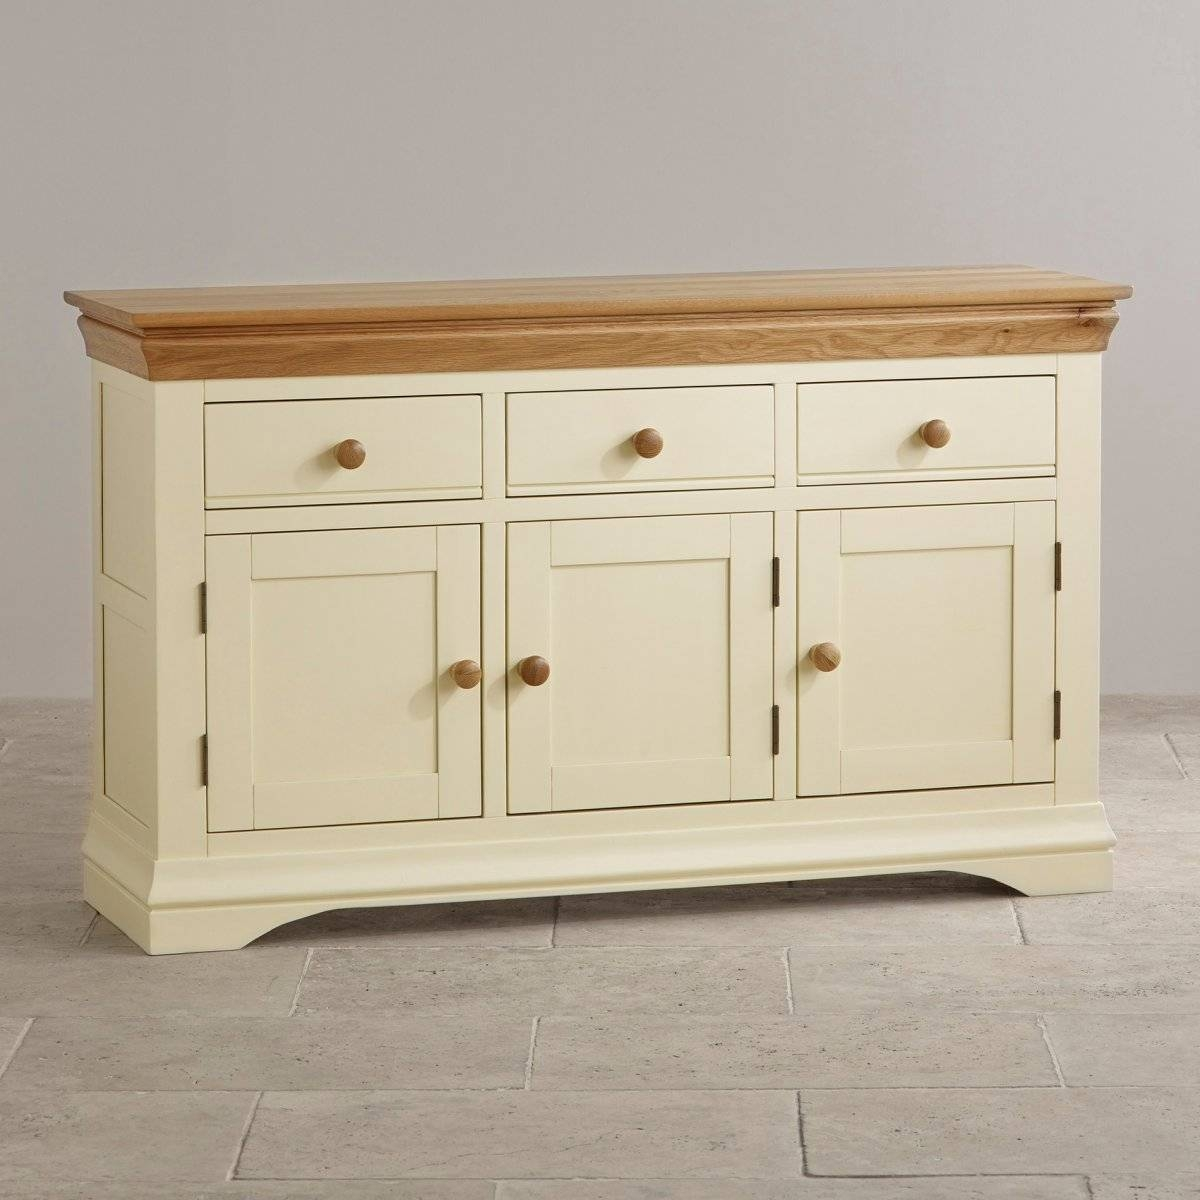 Sideboards | 100% Solid Hardwood | Oak Furniture Land intended for Light Oak Sideboards (Image 19 of 30)